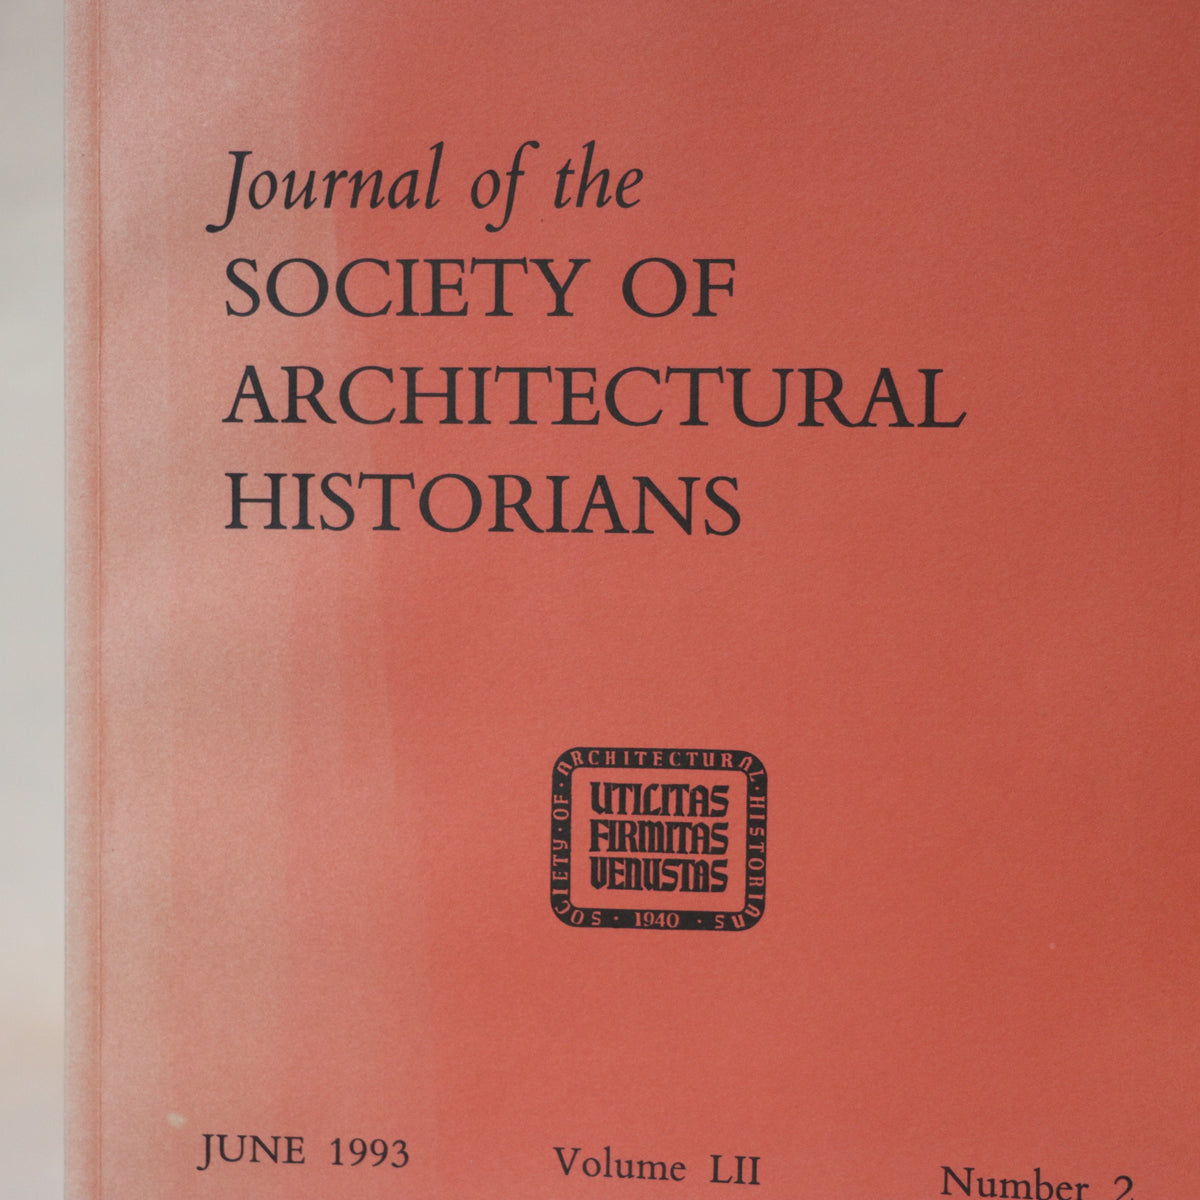 journal of the society of architectural historians june 1993 volume lii number 2